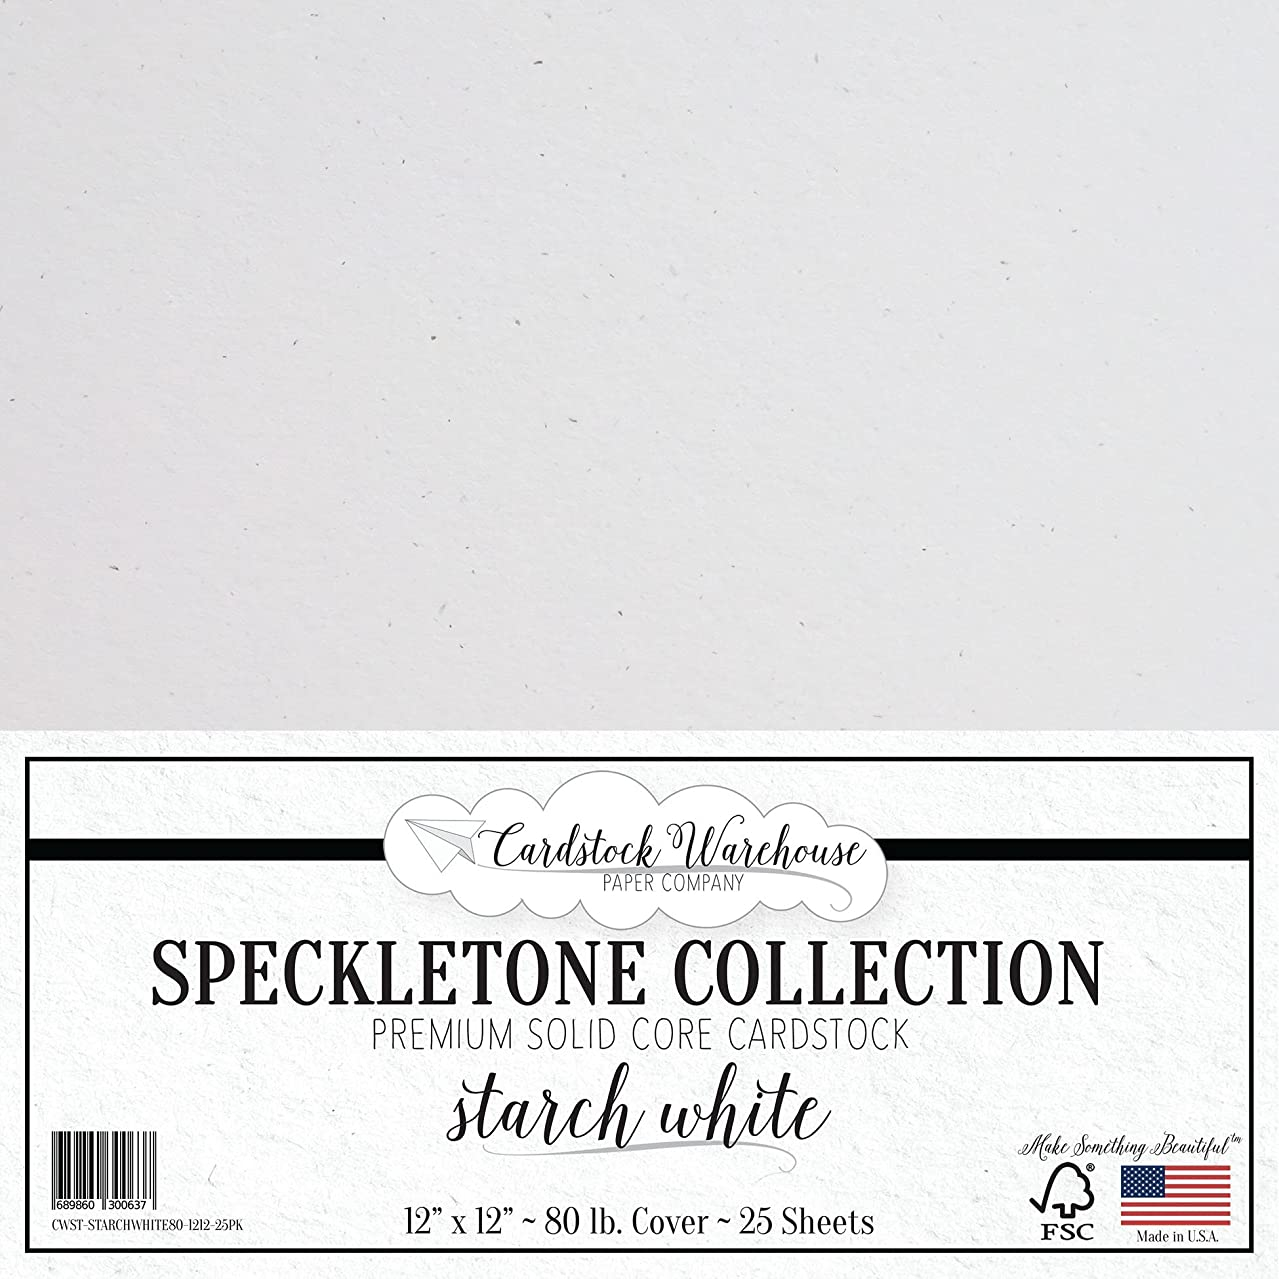 Starch White SPECKLETONE Recycled Cardstock Paper - 12 x 12 inch - Premium 80 LB. Cover - 25 Sheets